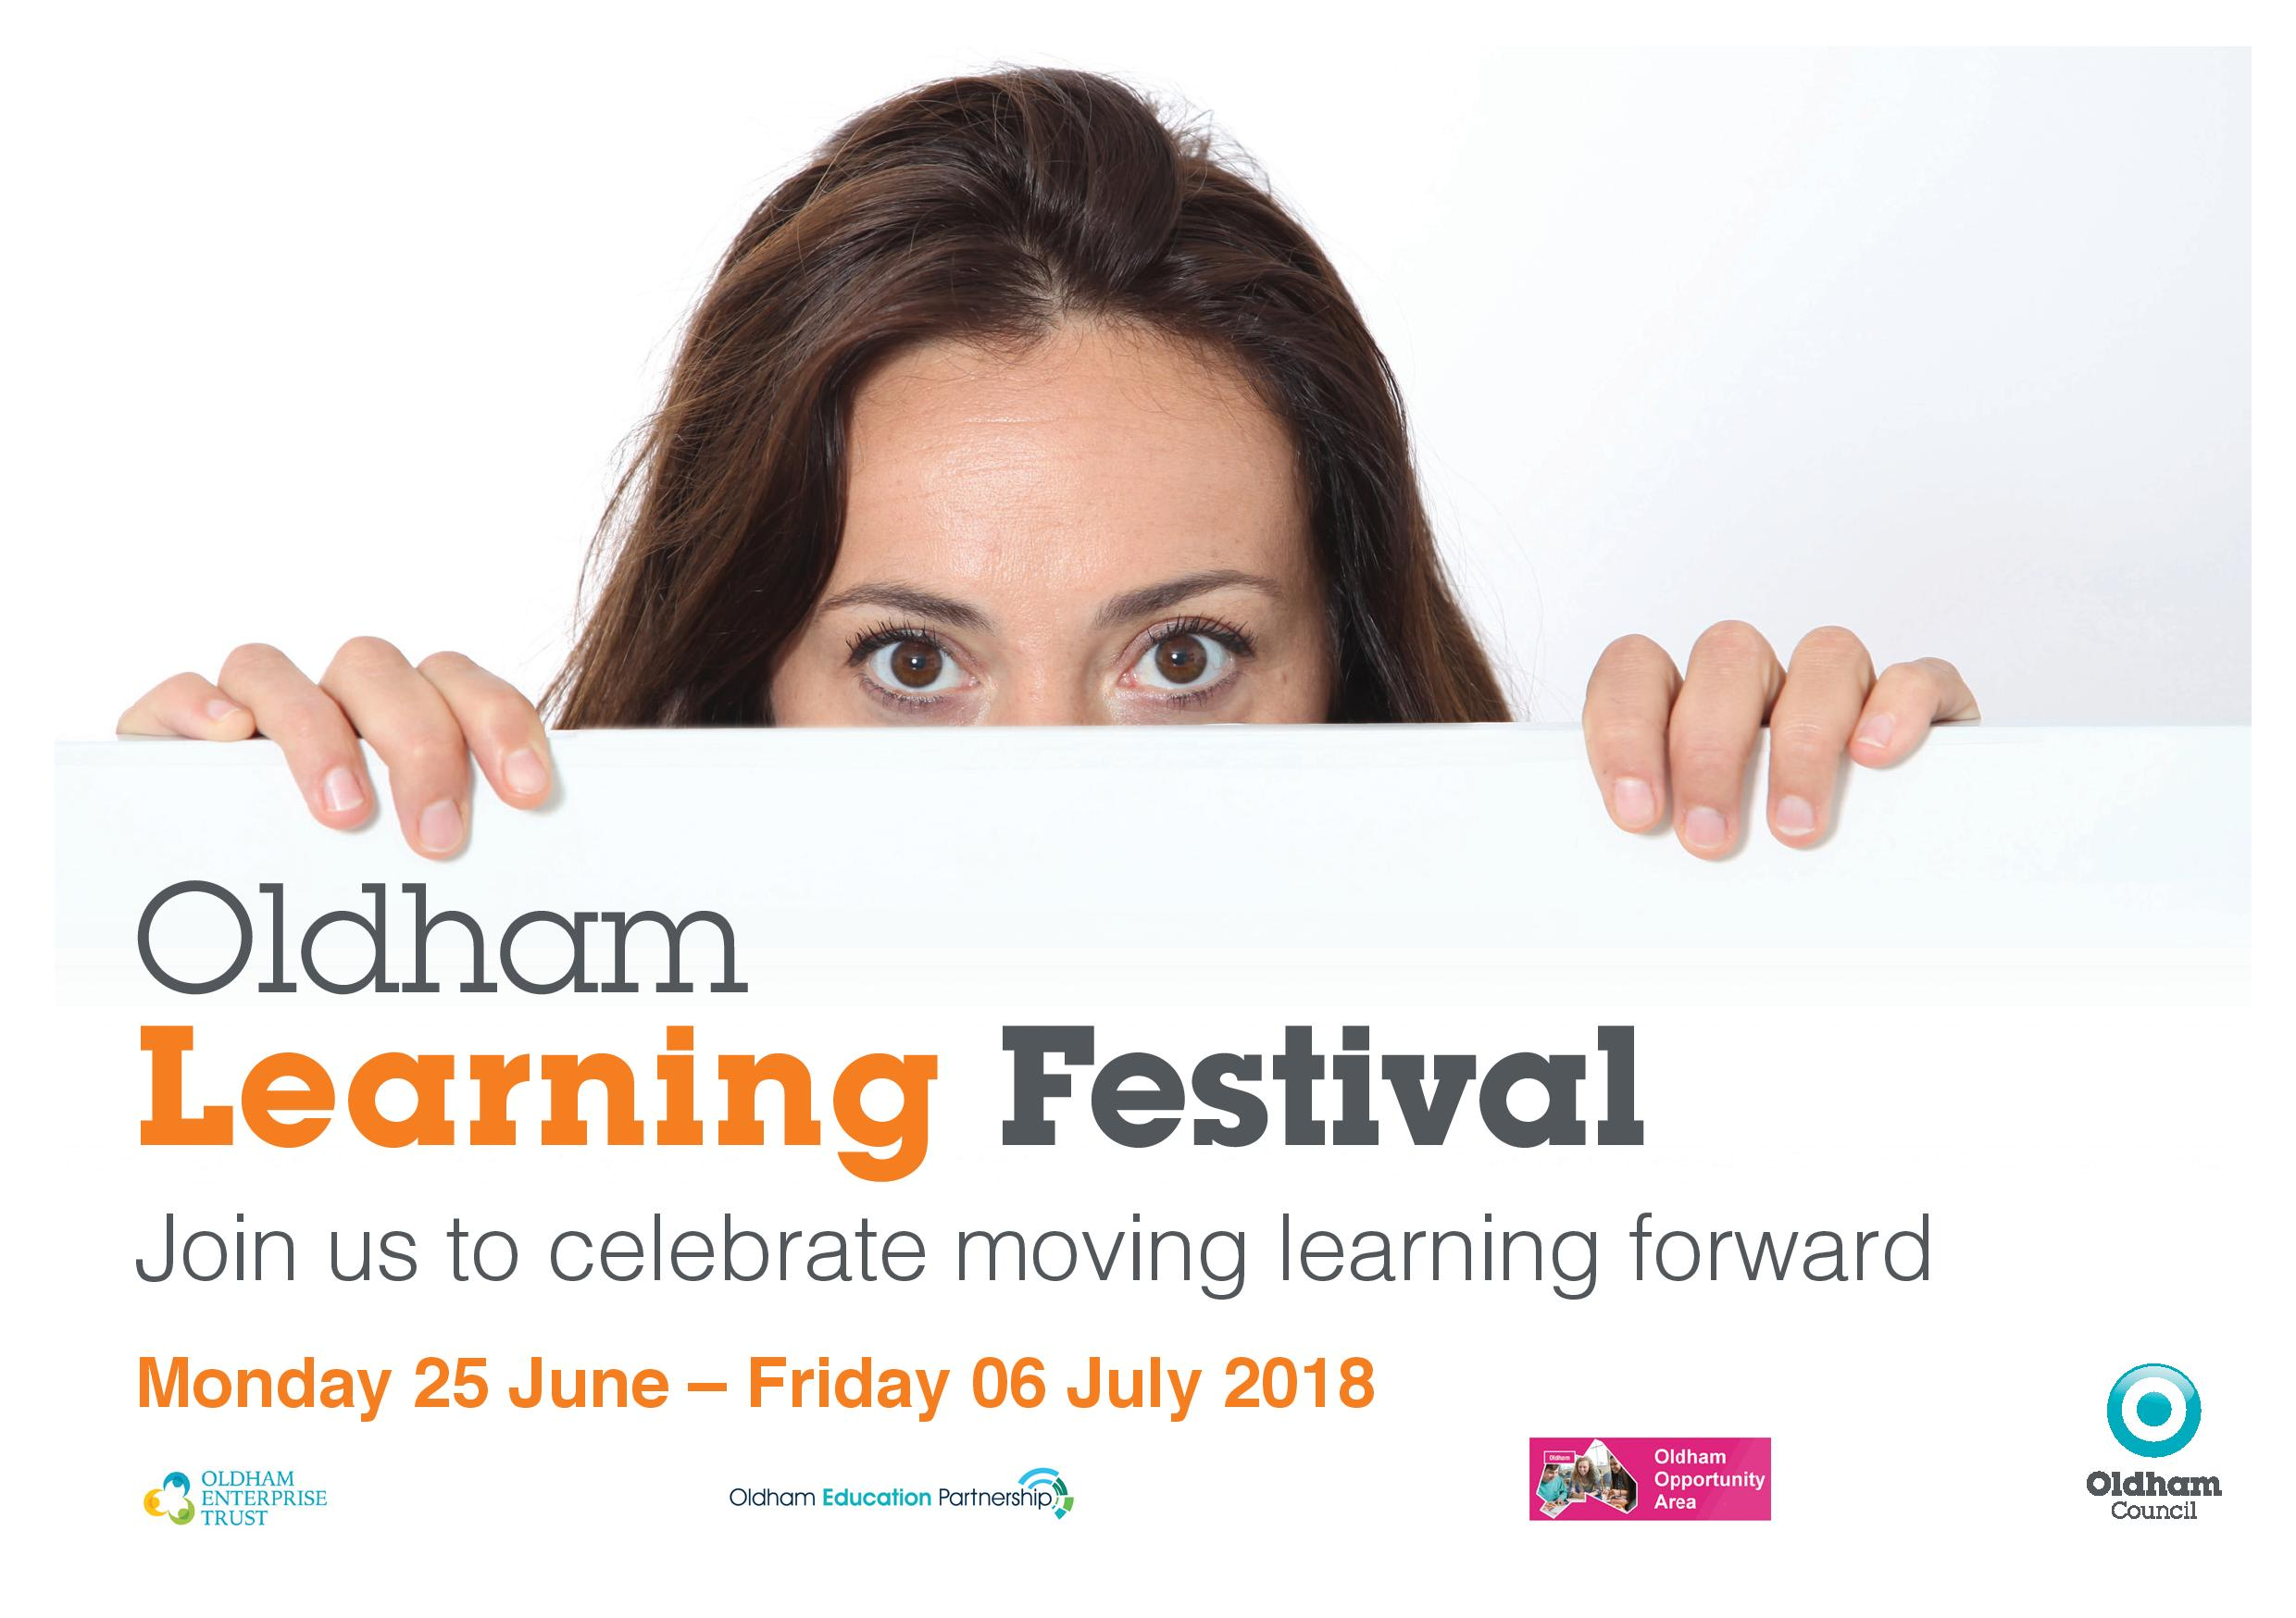 Oldham Learning Festival 2018